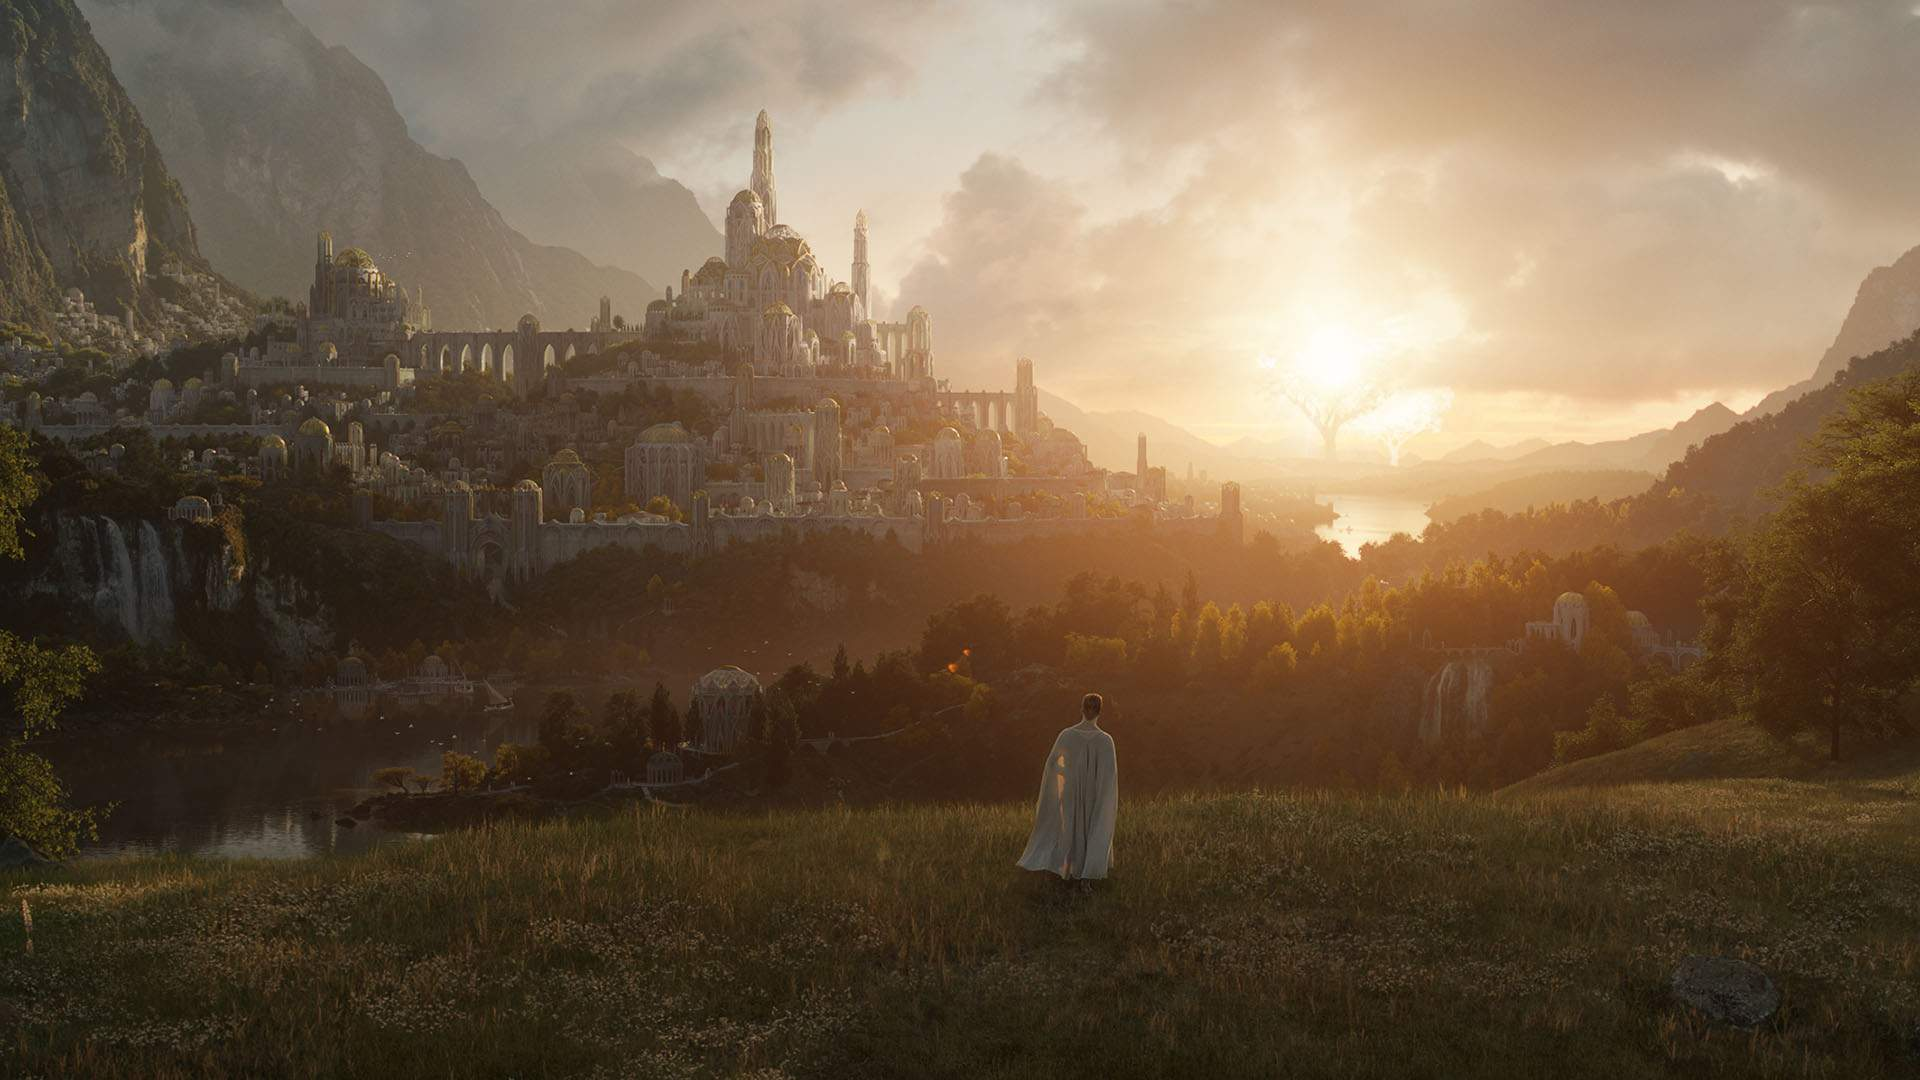 Amazon's New 'Lord of the Rings' TV Series Will Hit Your Streaming Queue in September 2022